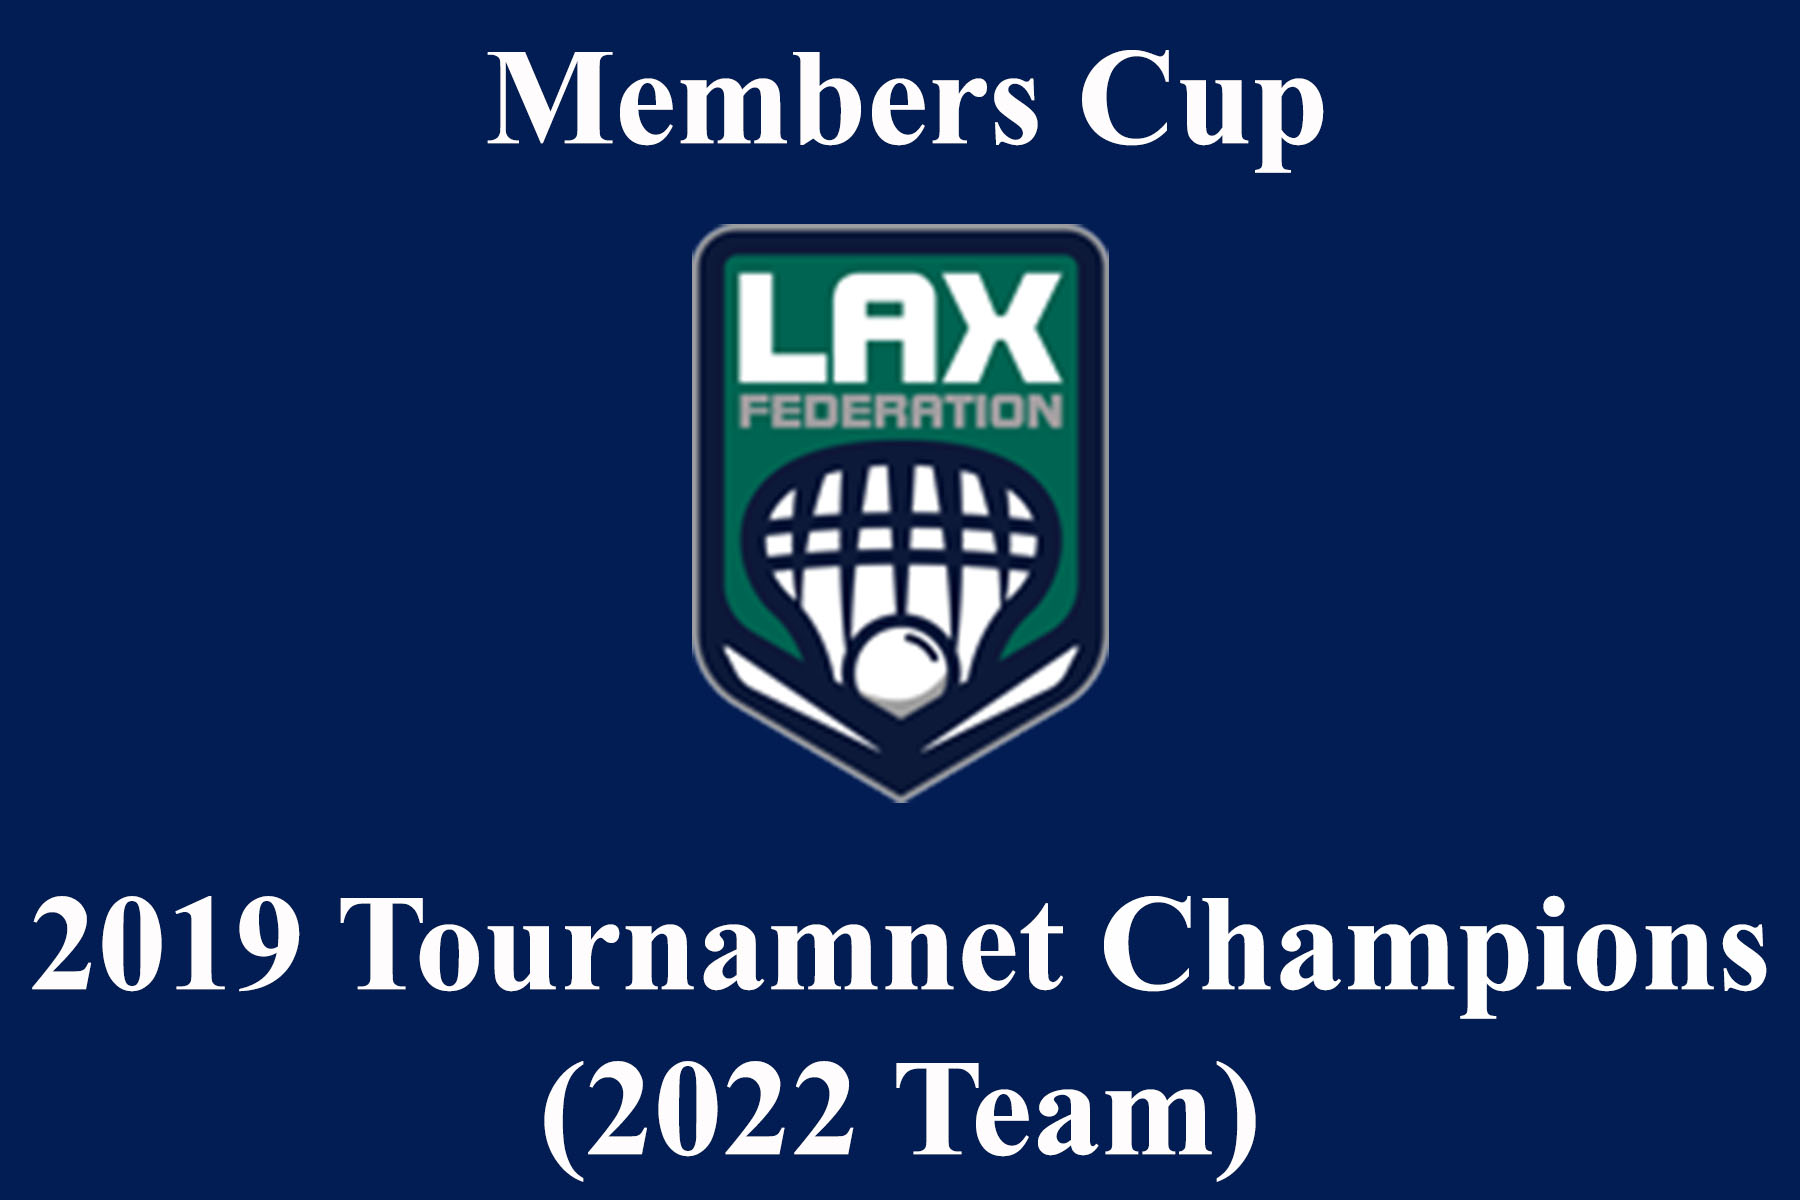 Members Cup 2019 Champion 2022 2